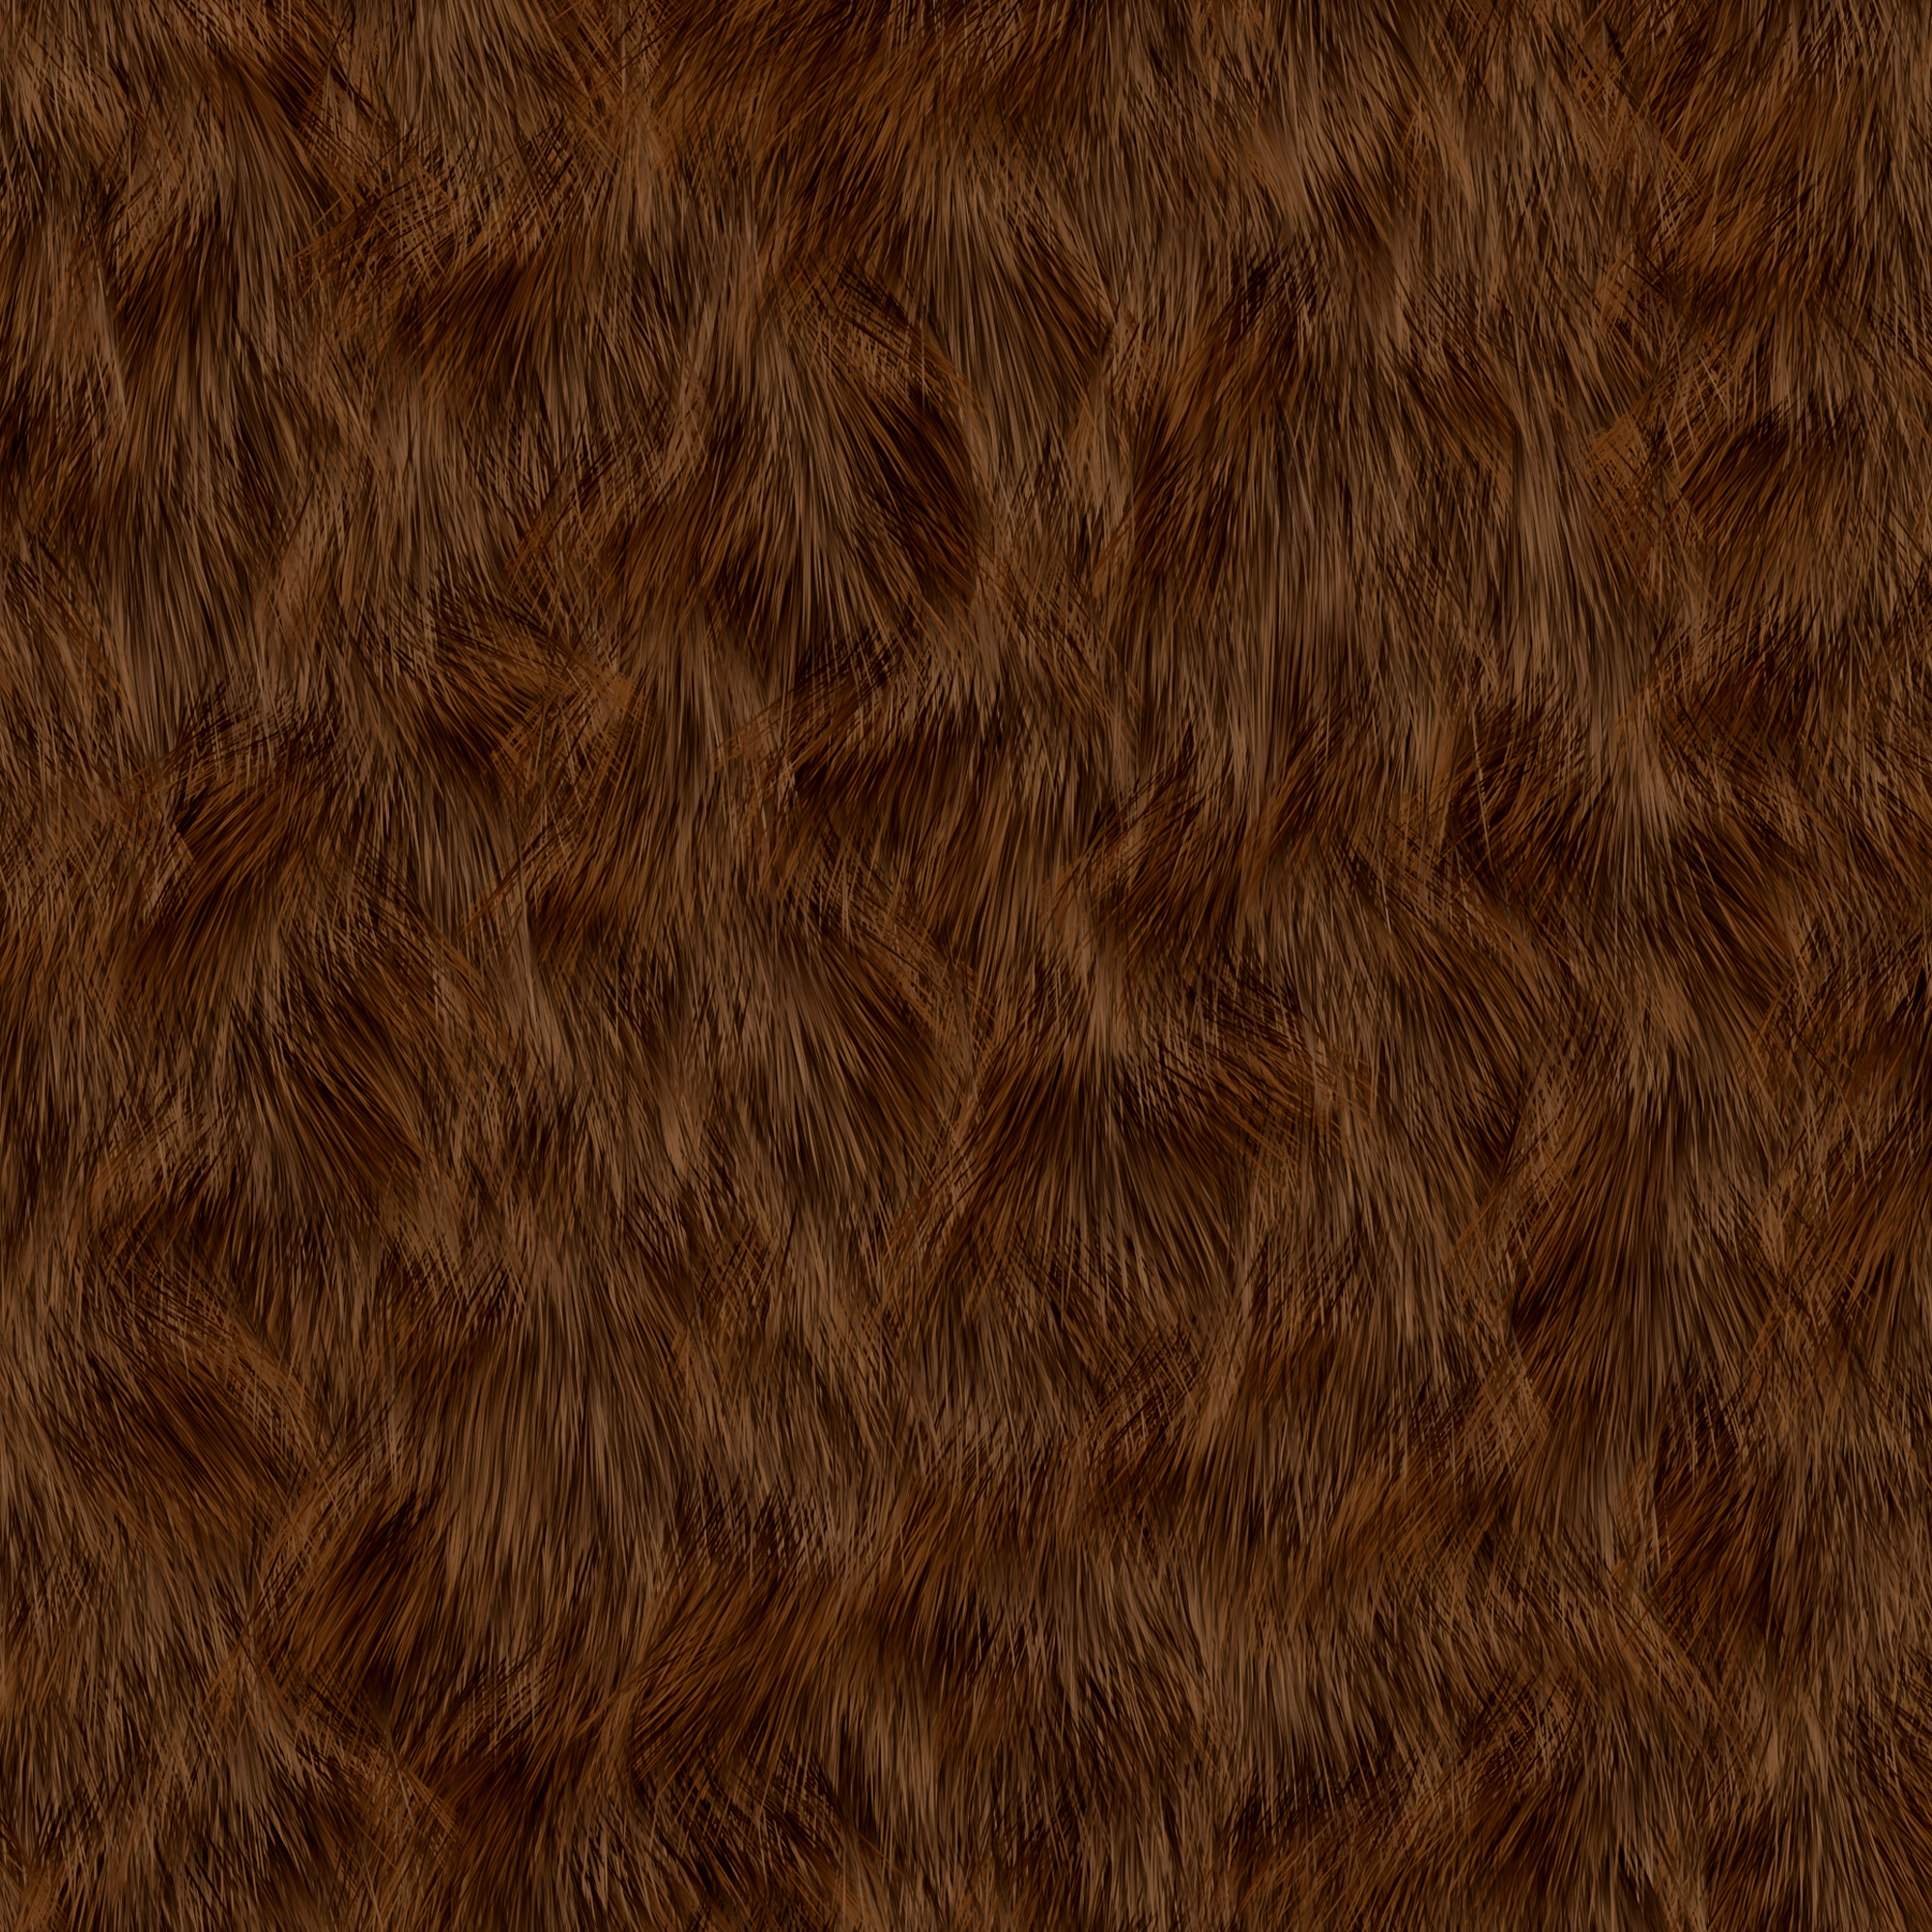 , animal texture, background, skin animal texture, background